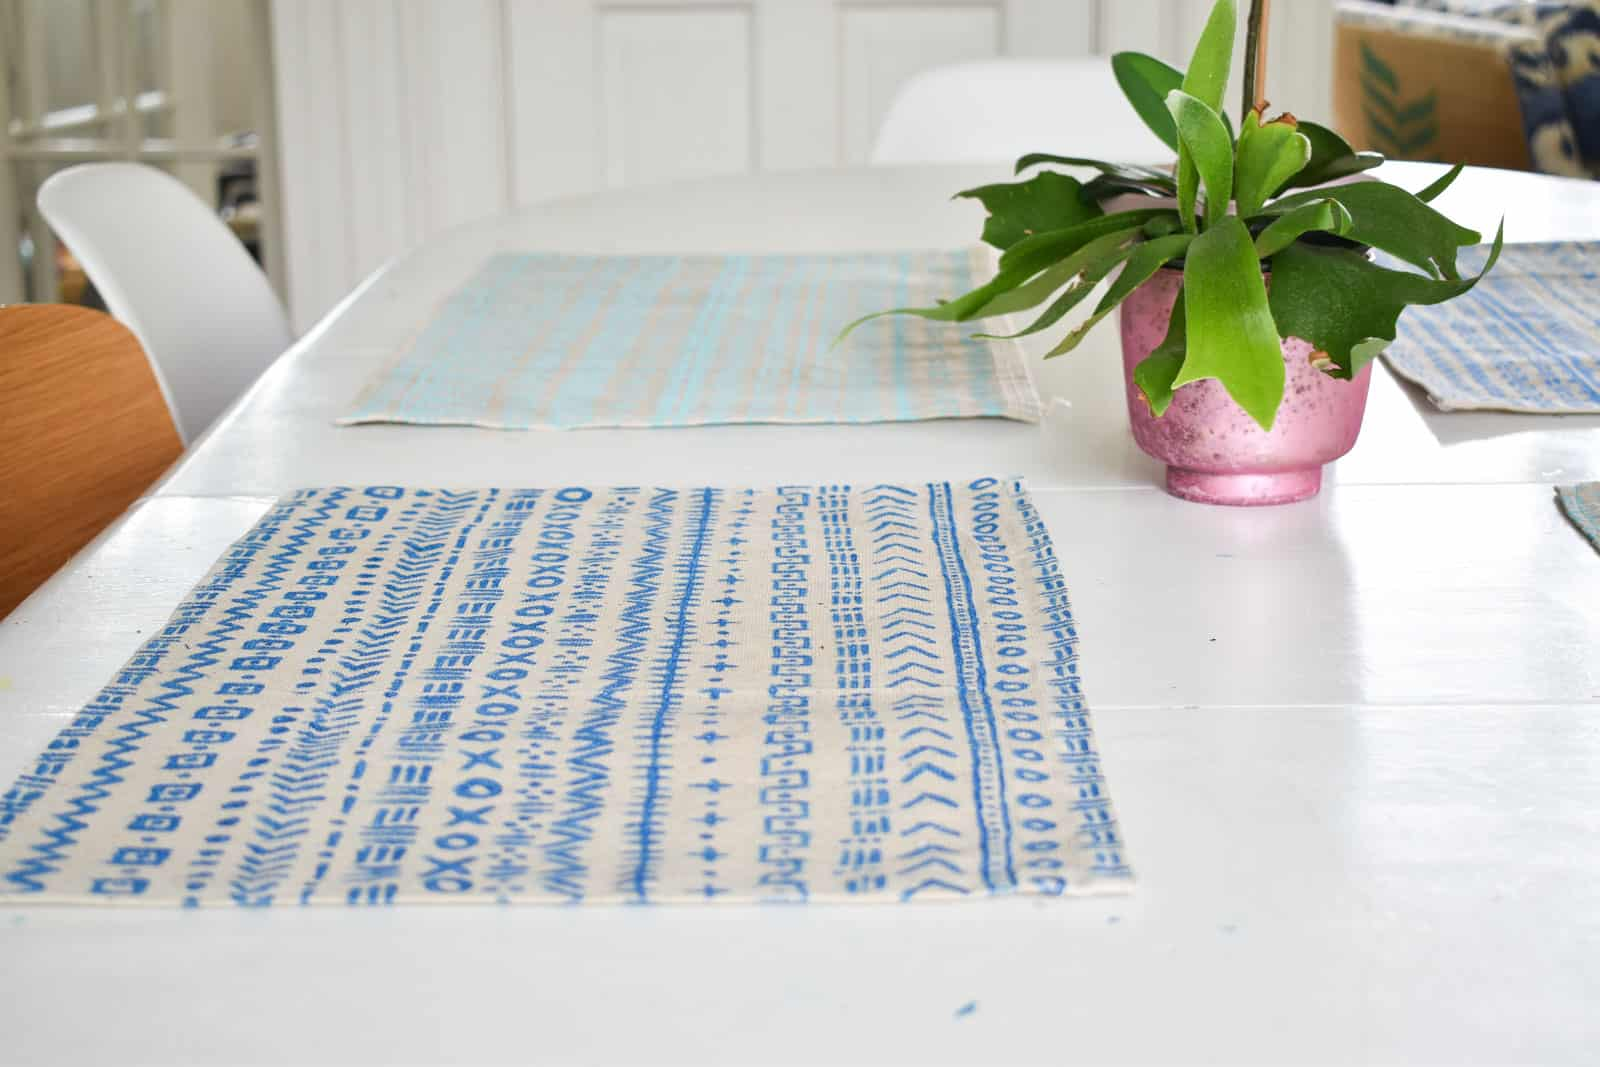 placemats with mudcloth pattern